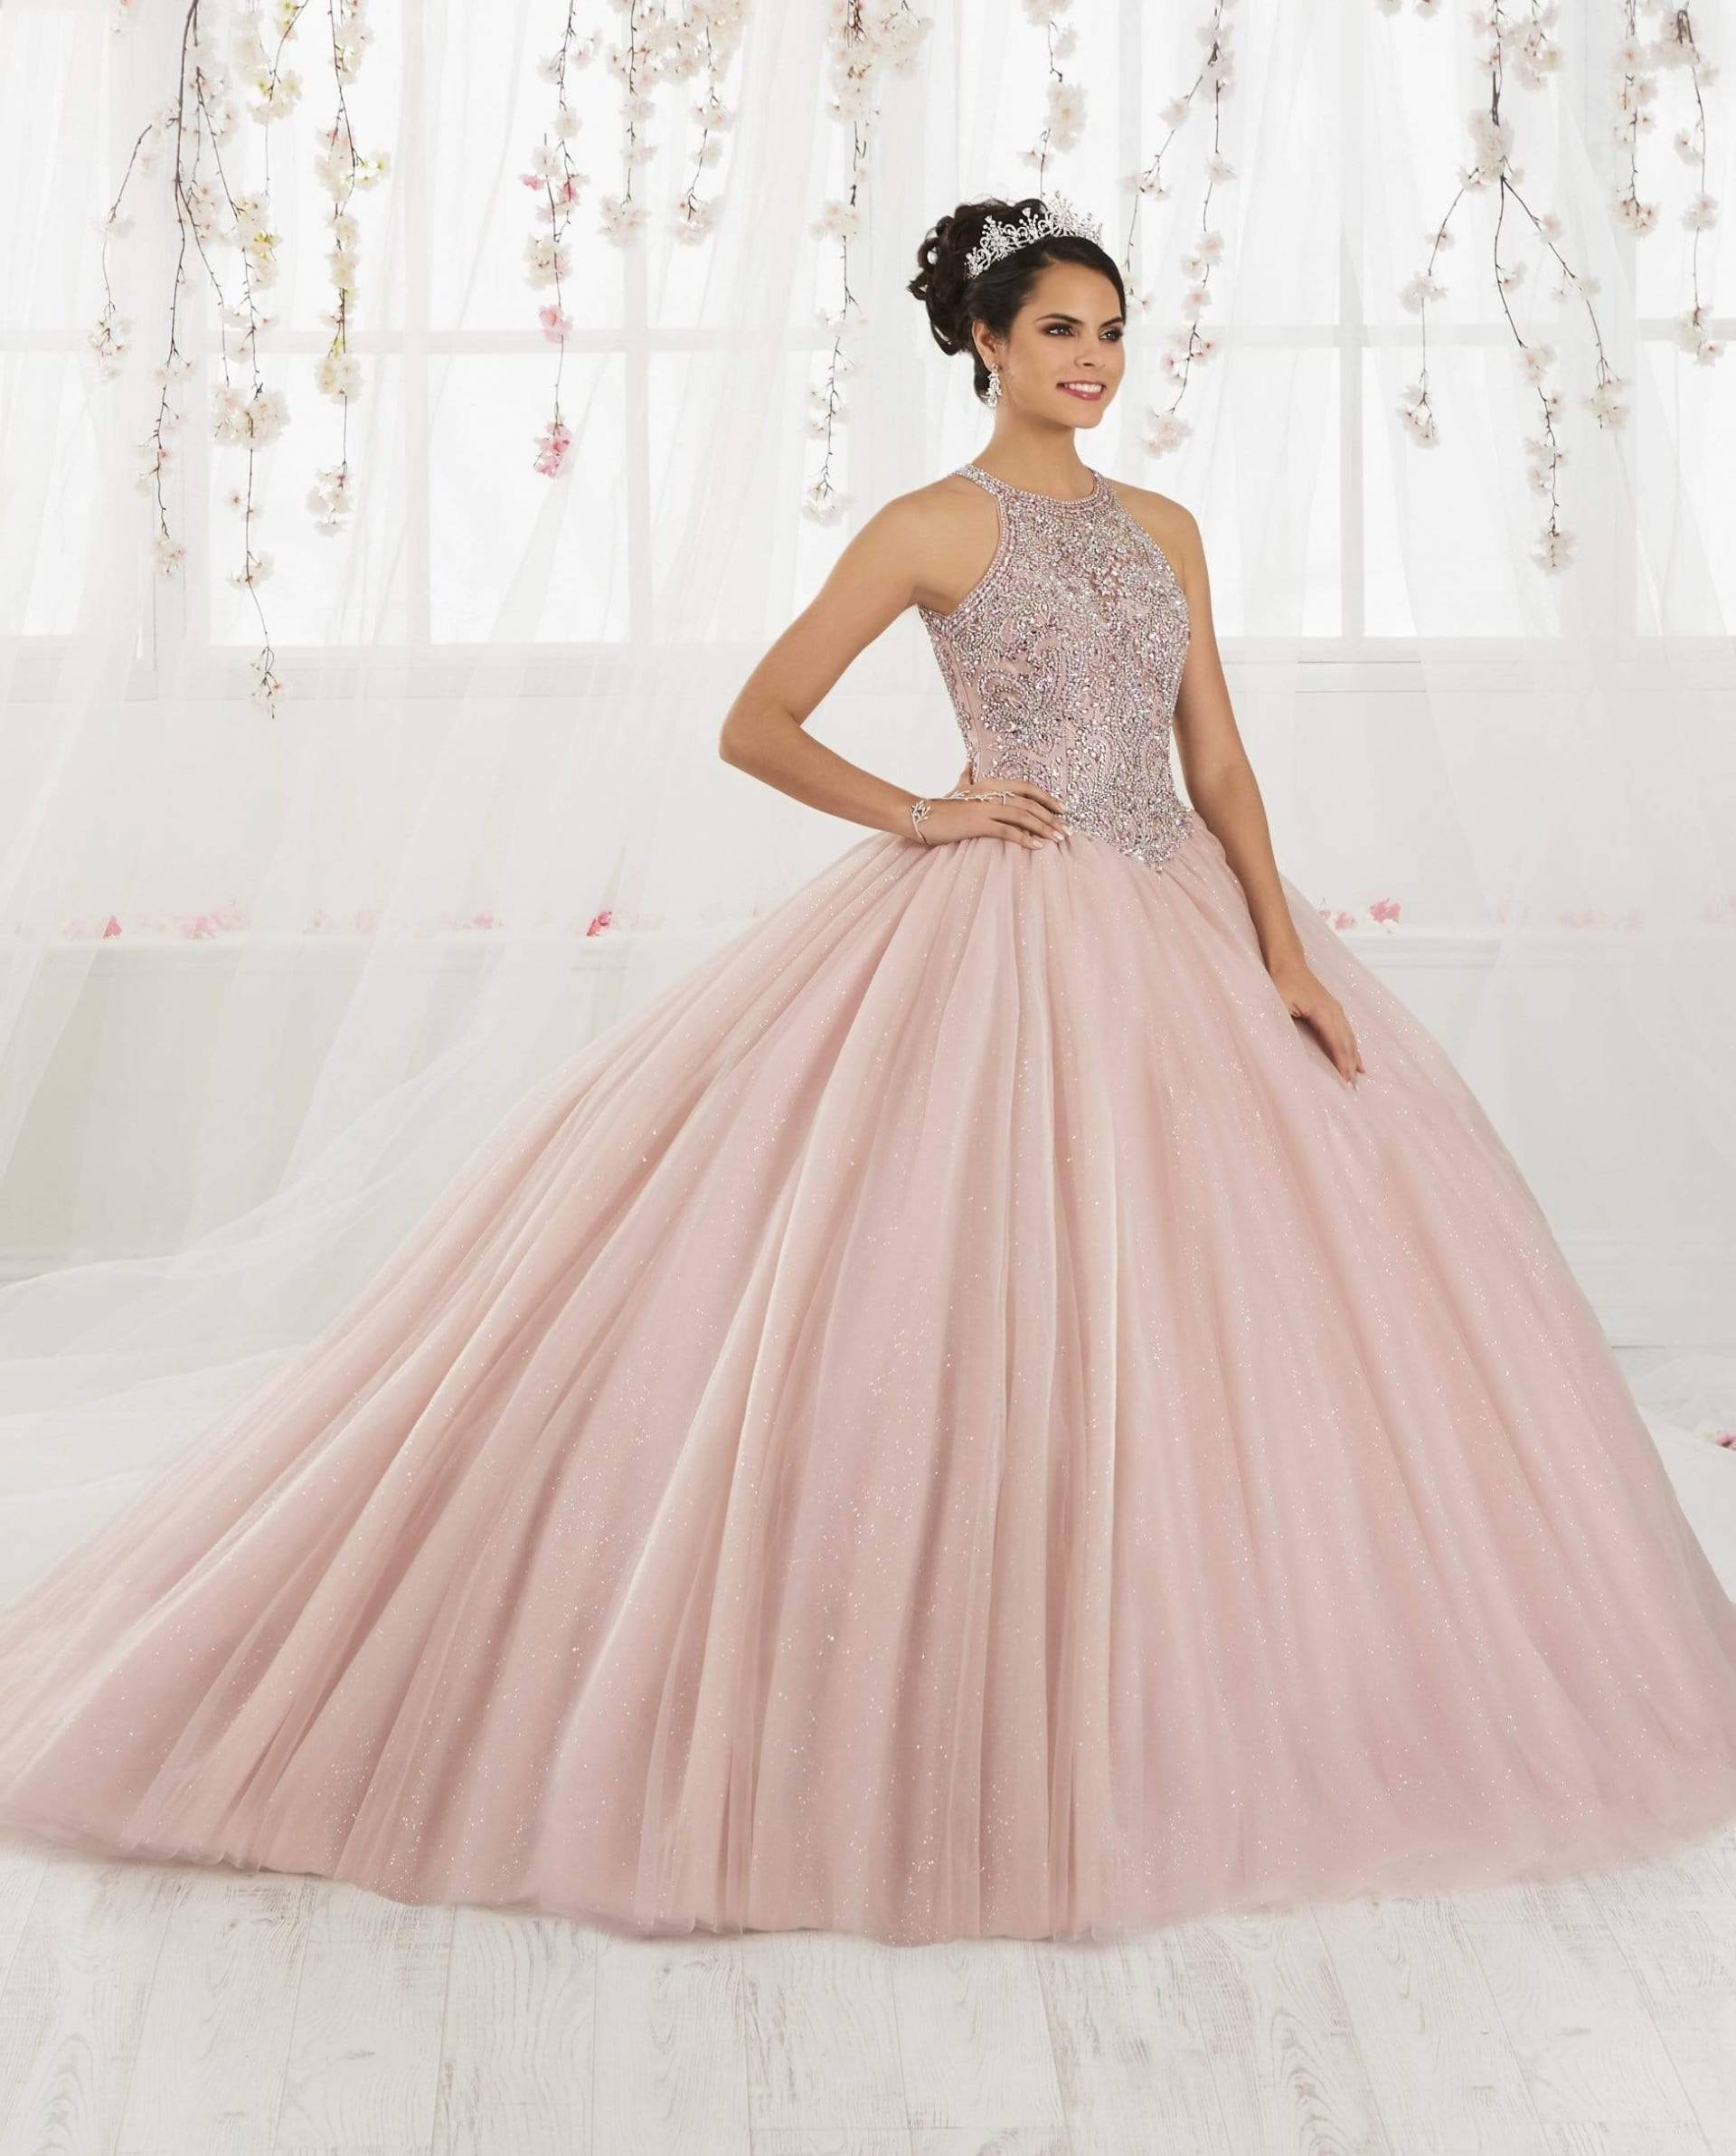 Quinceanera Collection - 26914 Halter Bodice Glitter Tulle Ballgown from Quinceanera Collection